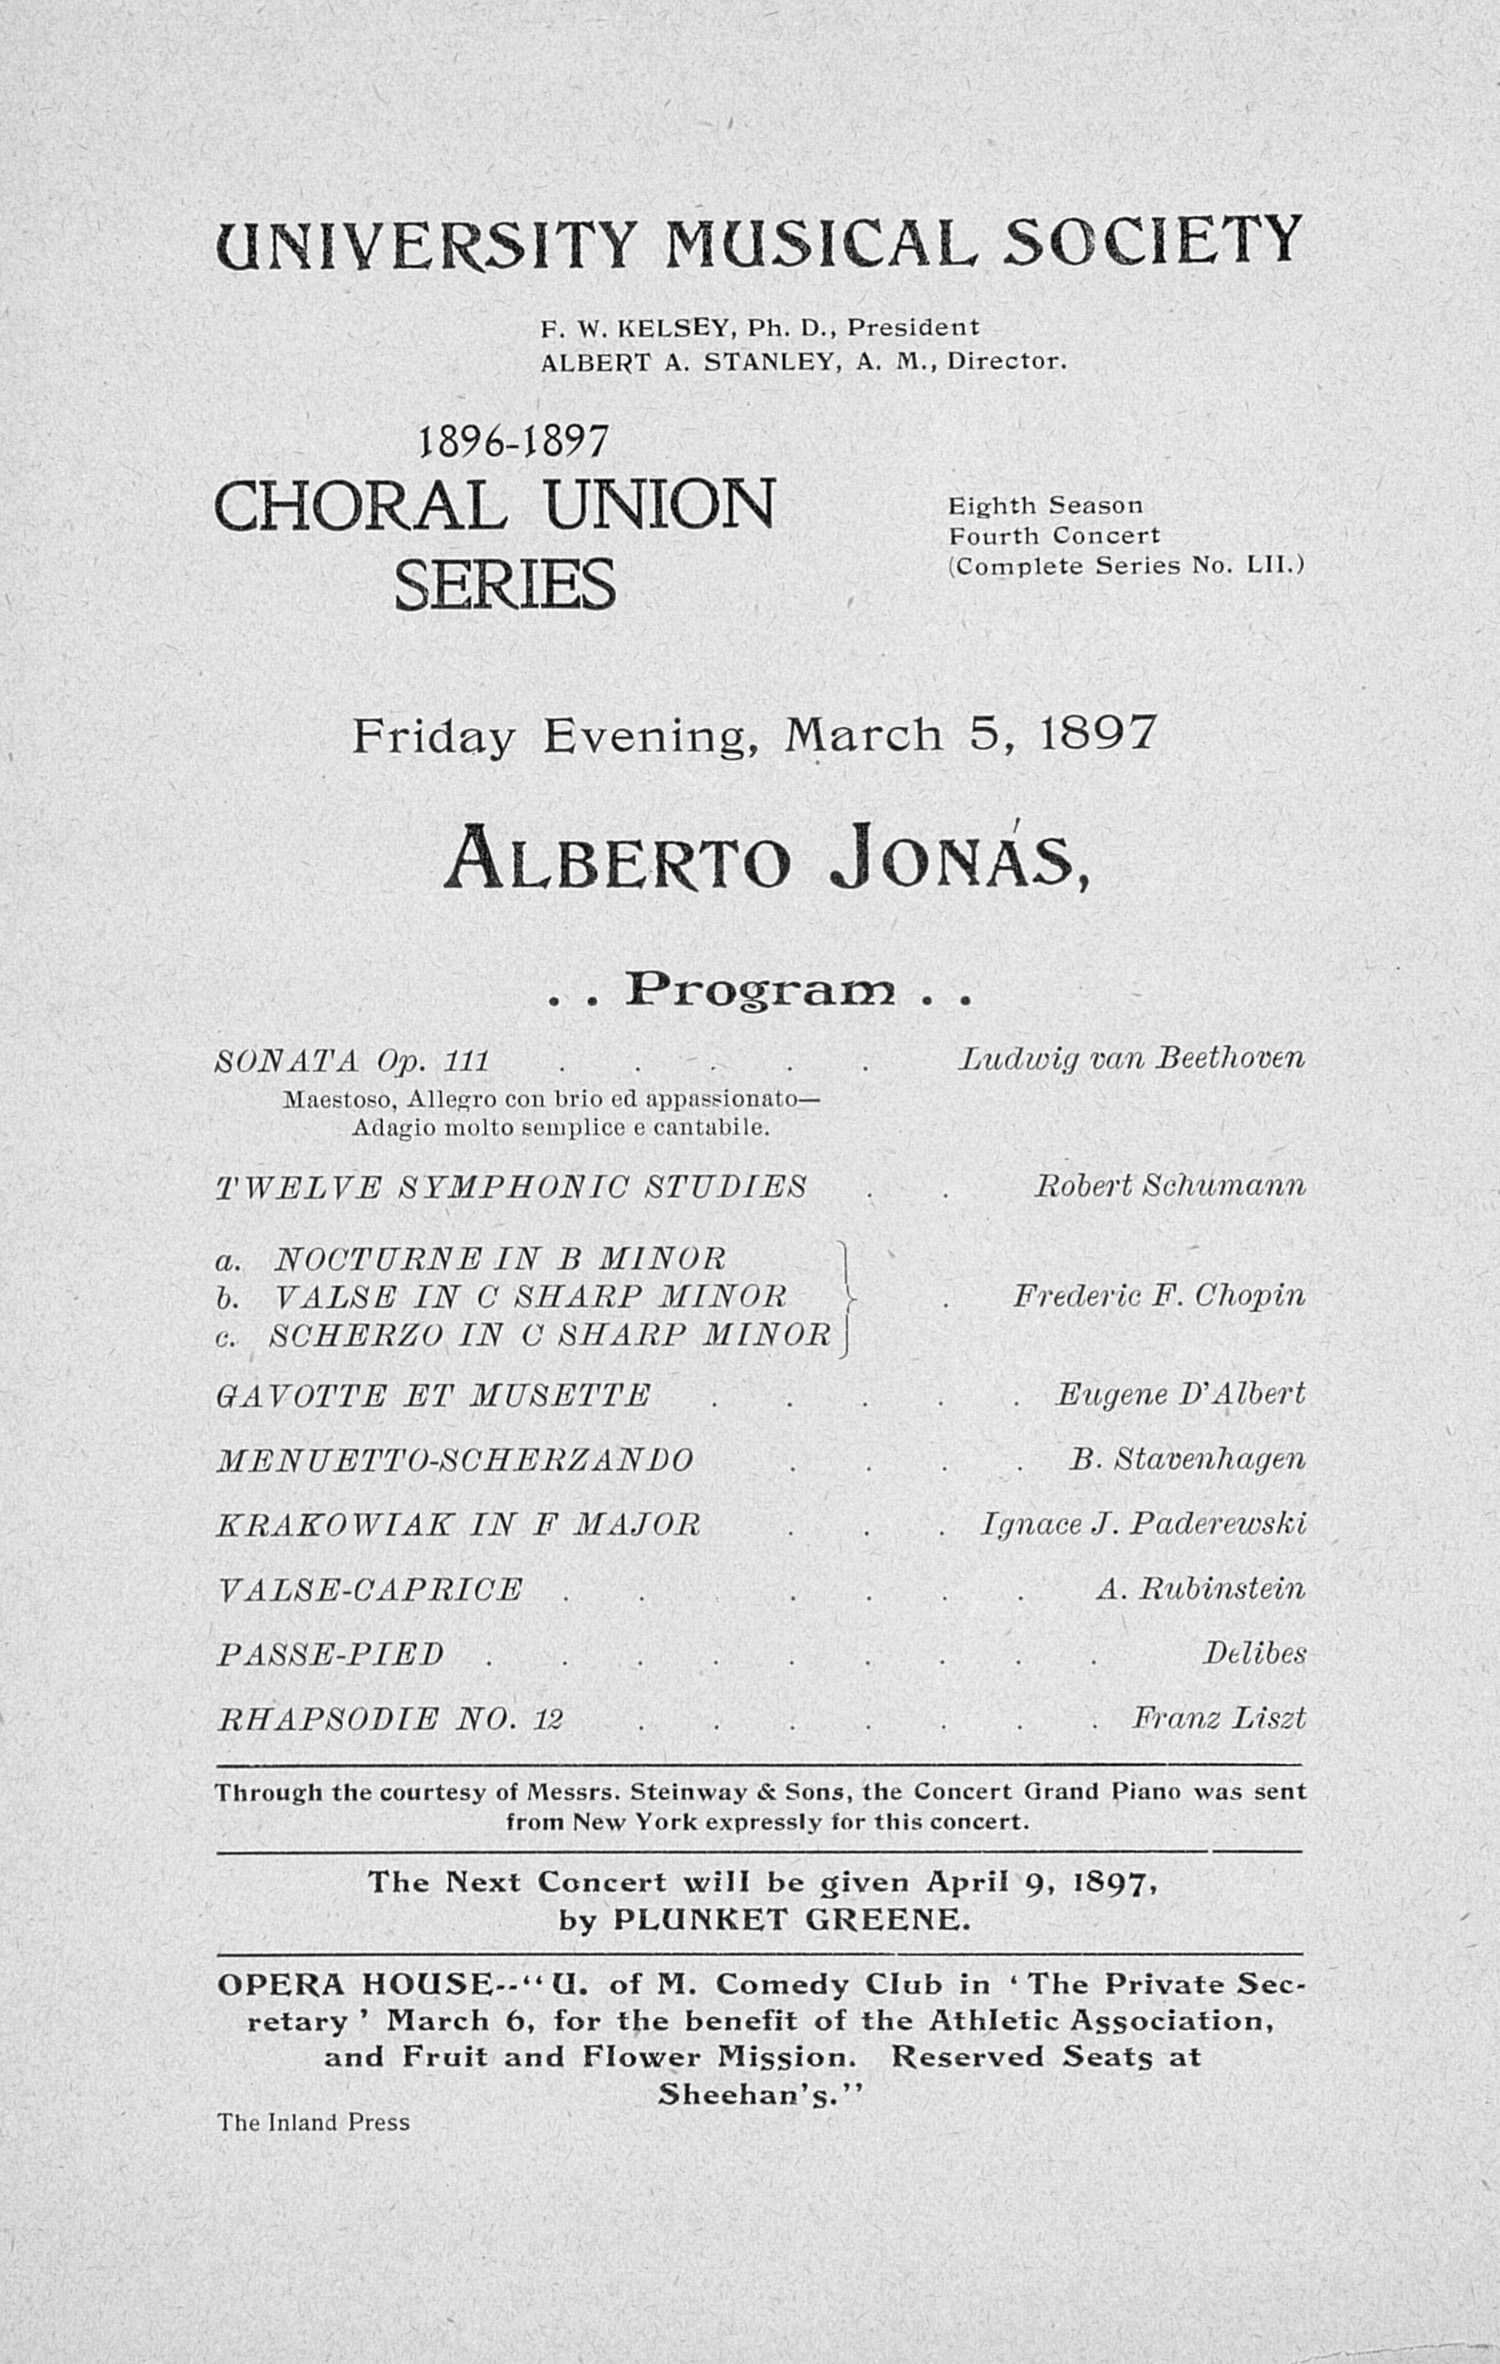 UMS Concert Program, March 5, 1897: Choral Union Series -- Alberto Jon image